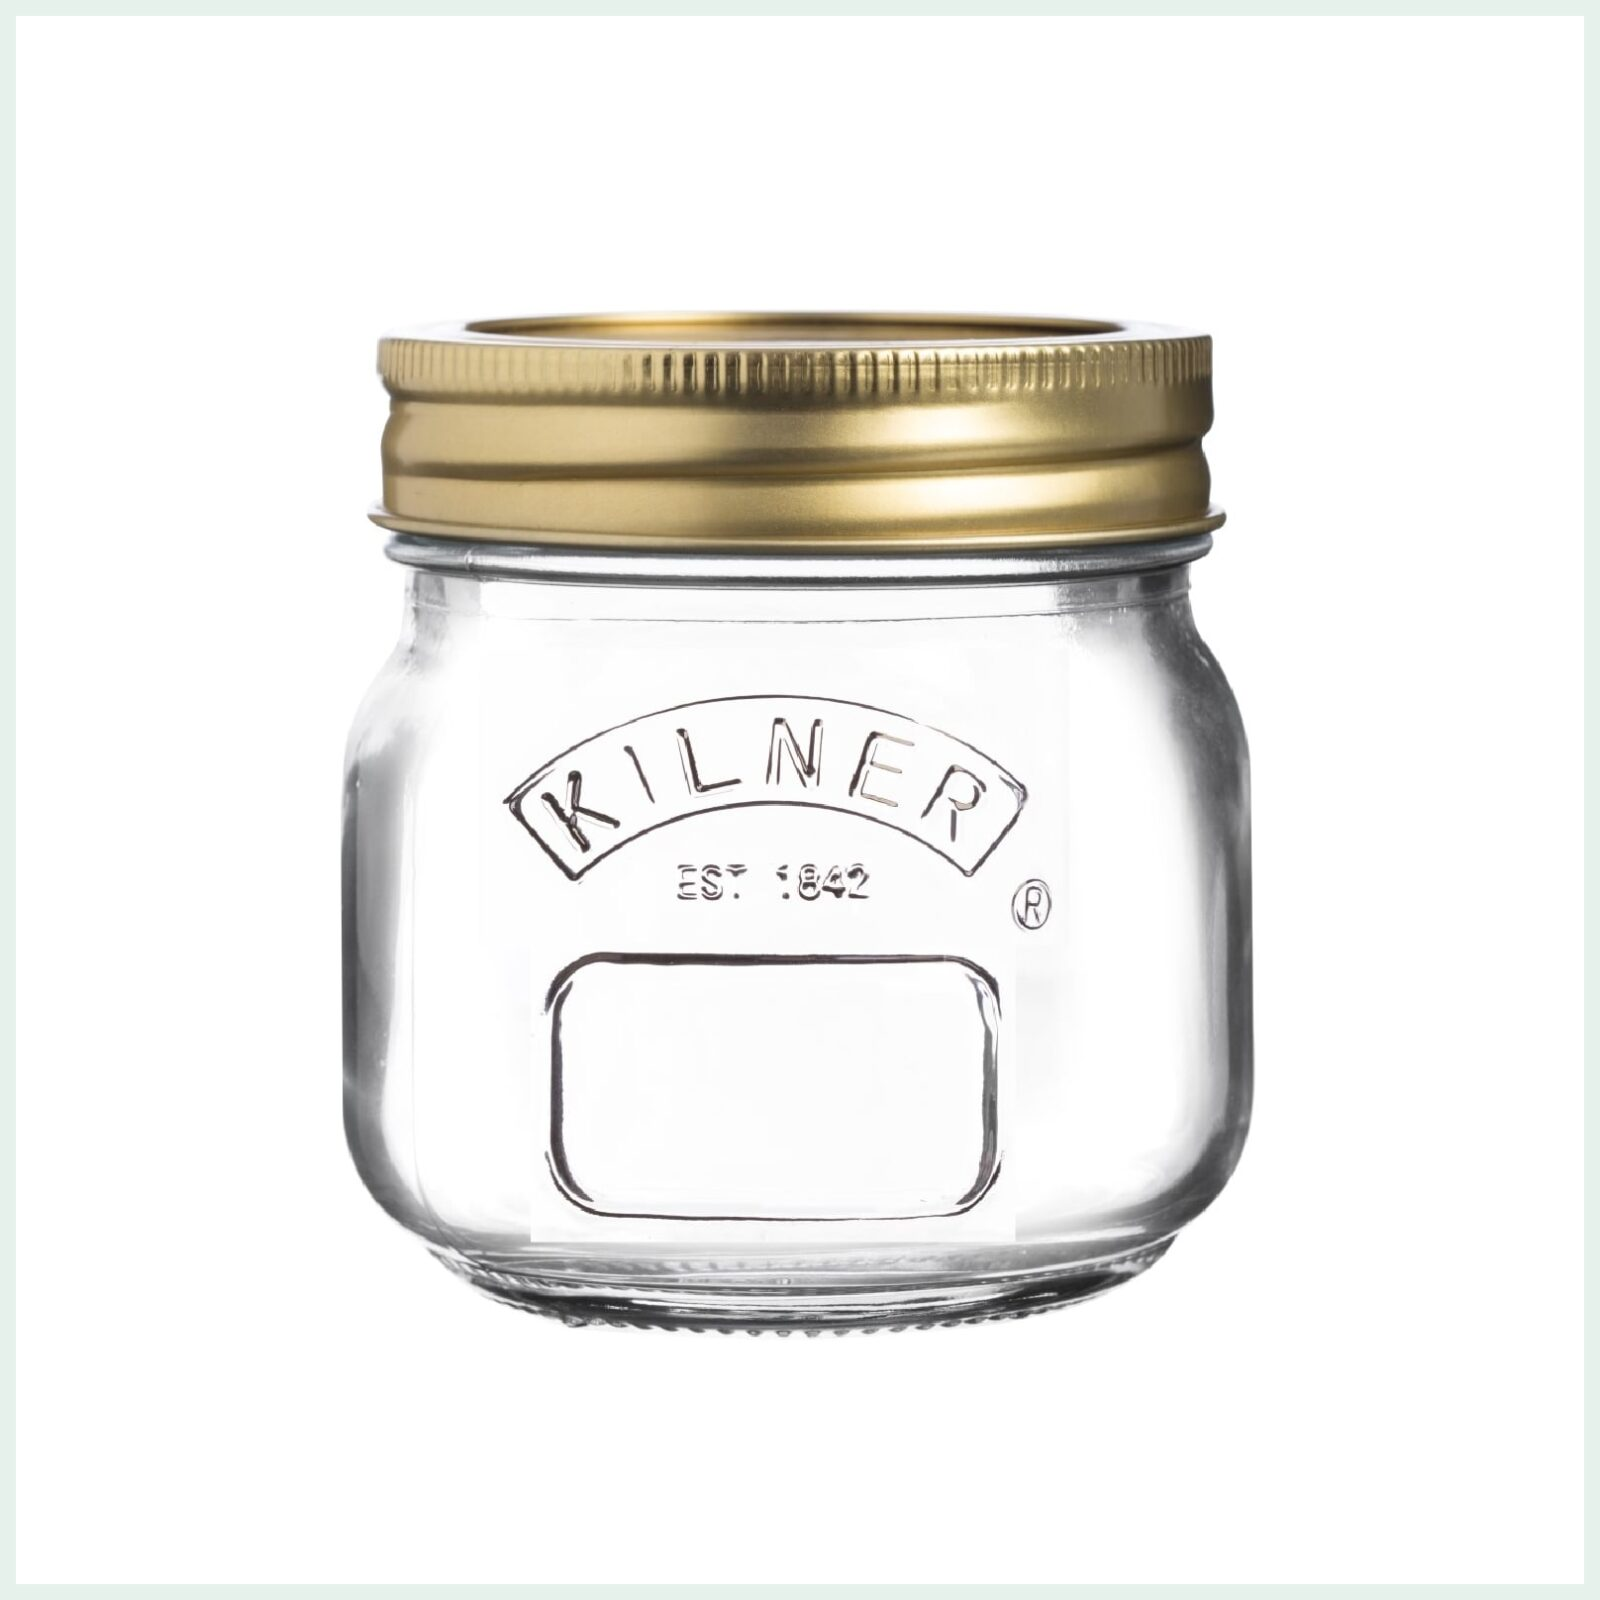 250ml kilner screw top jars for preserving, jam making and water bath canning